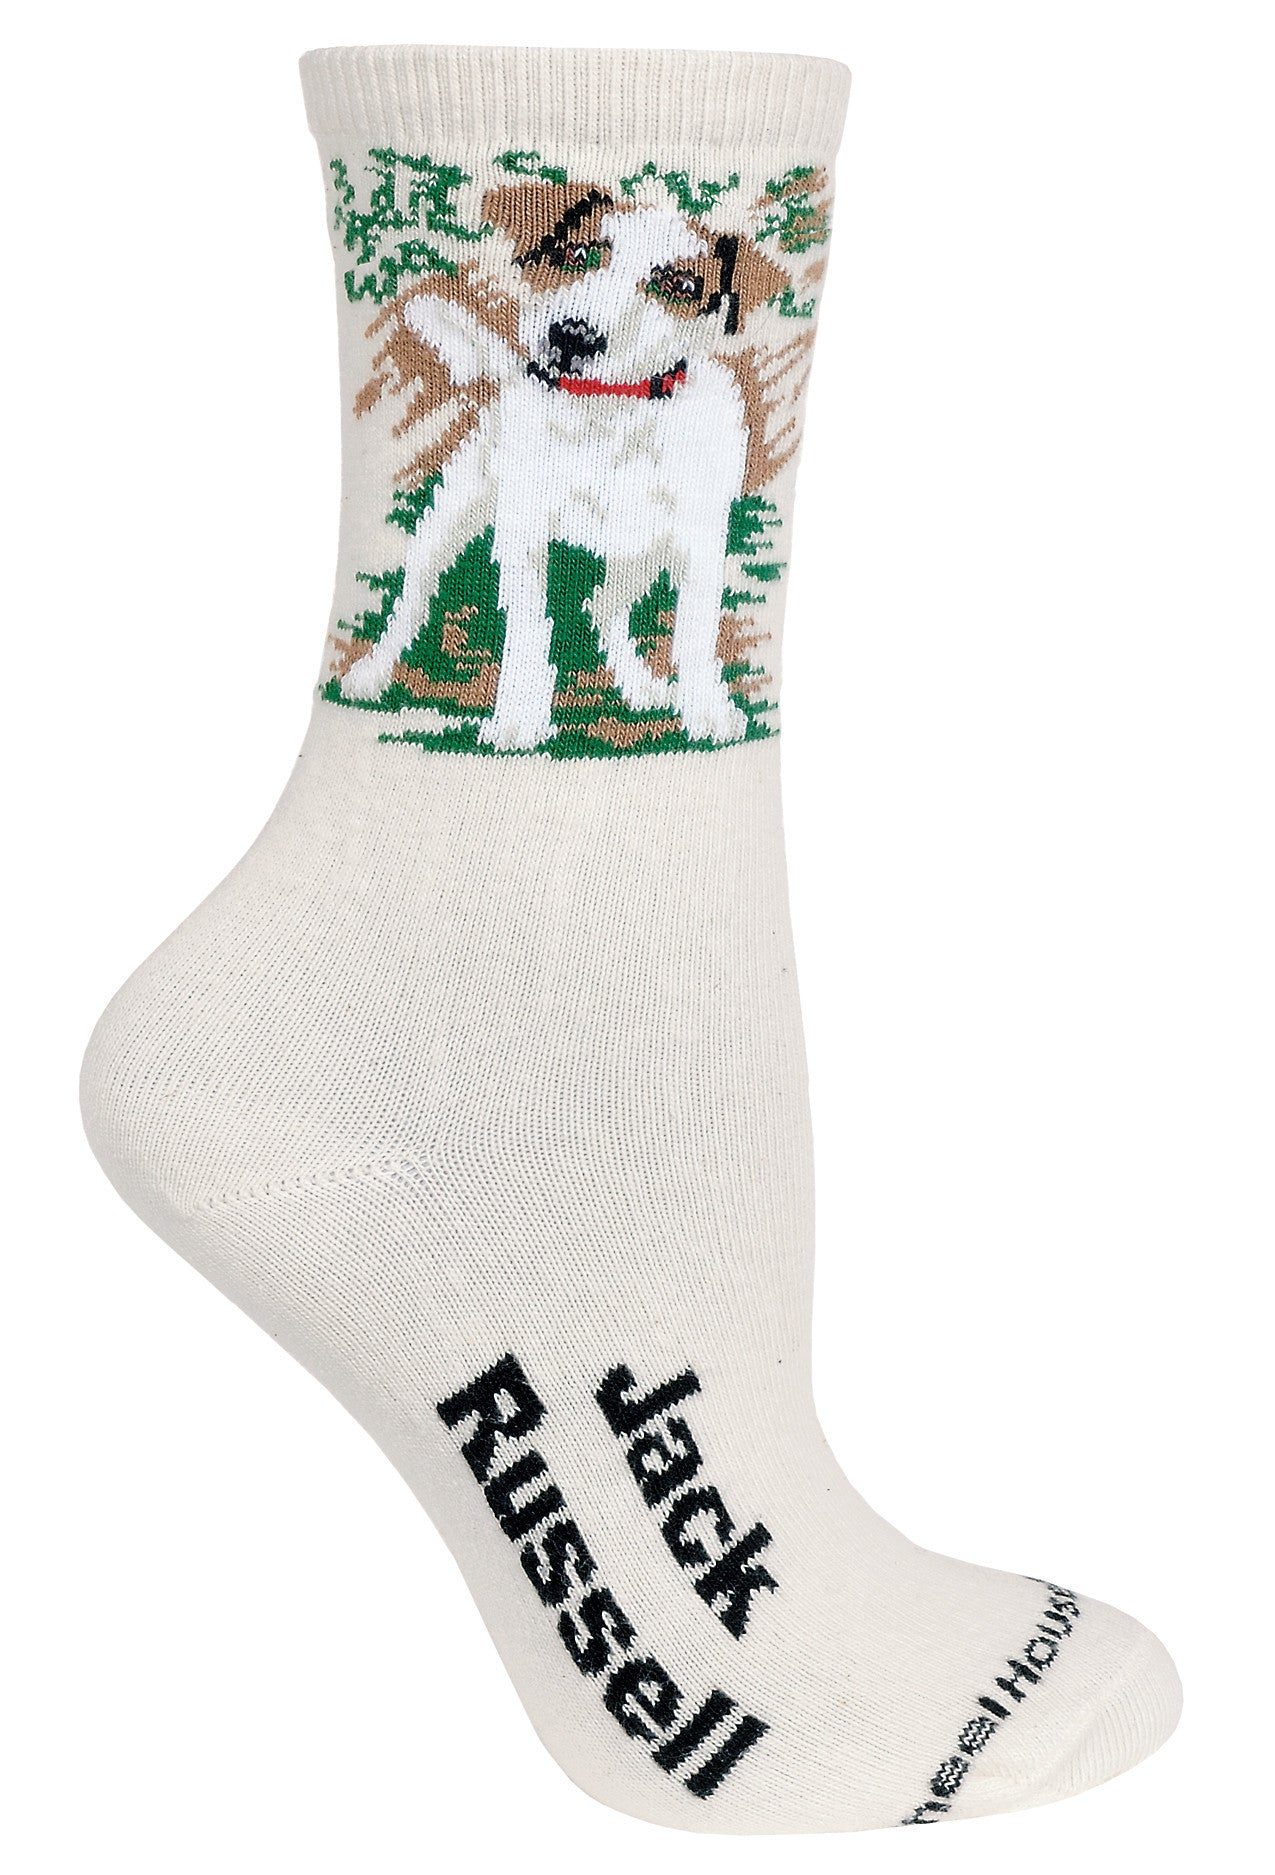 Jack Russell Terrier Crew Socks on Natural